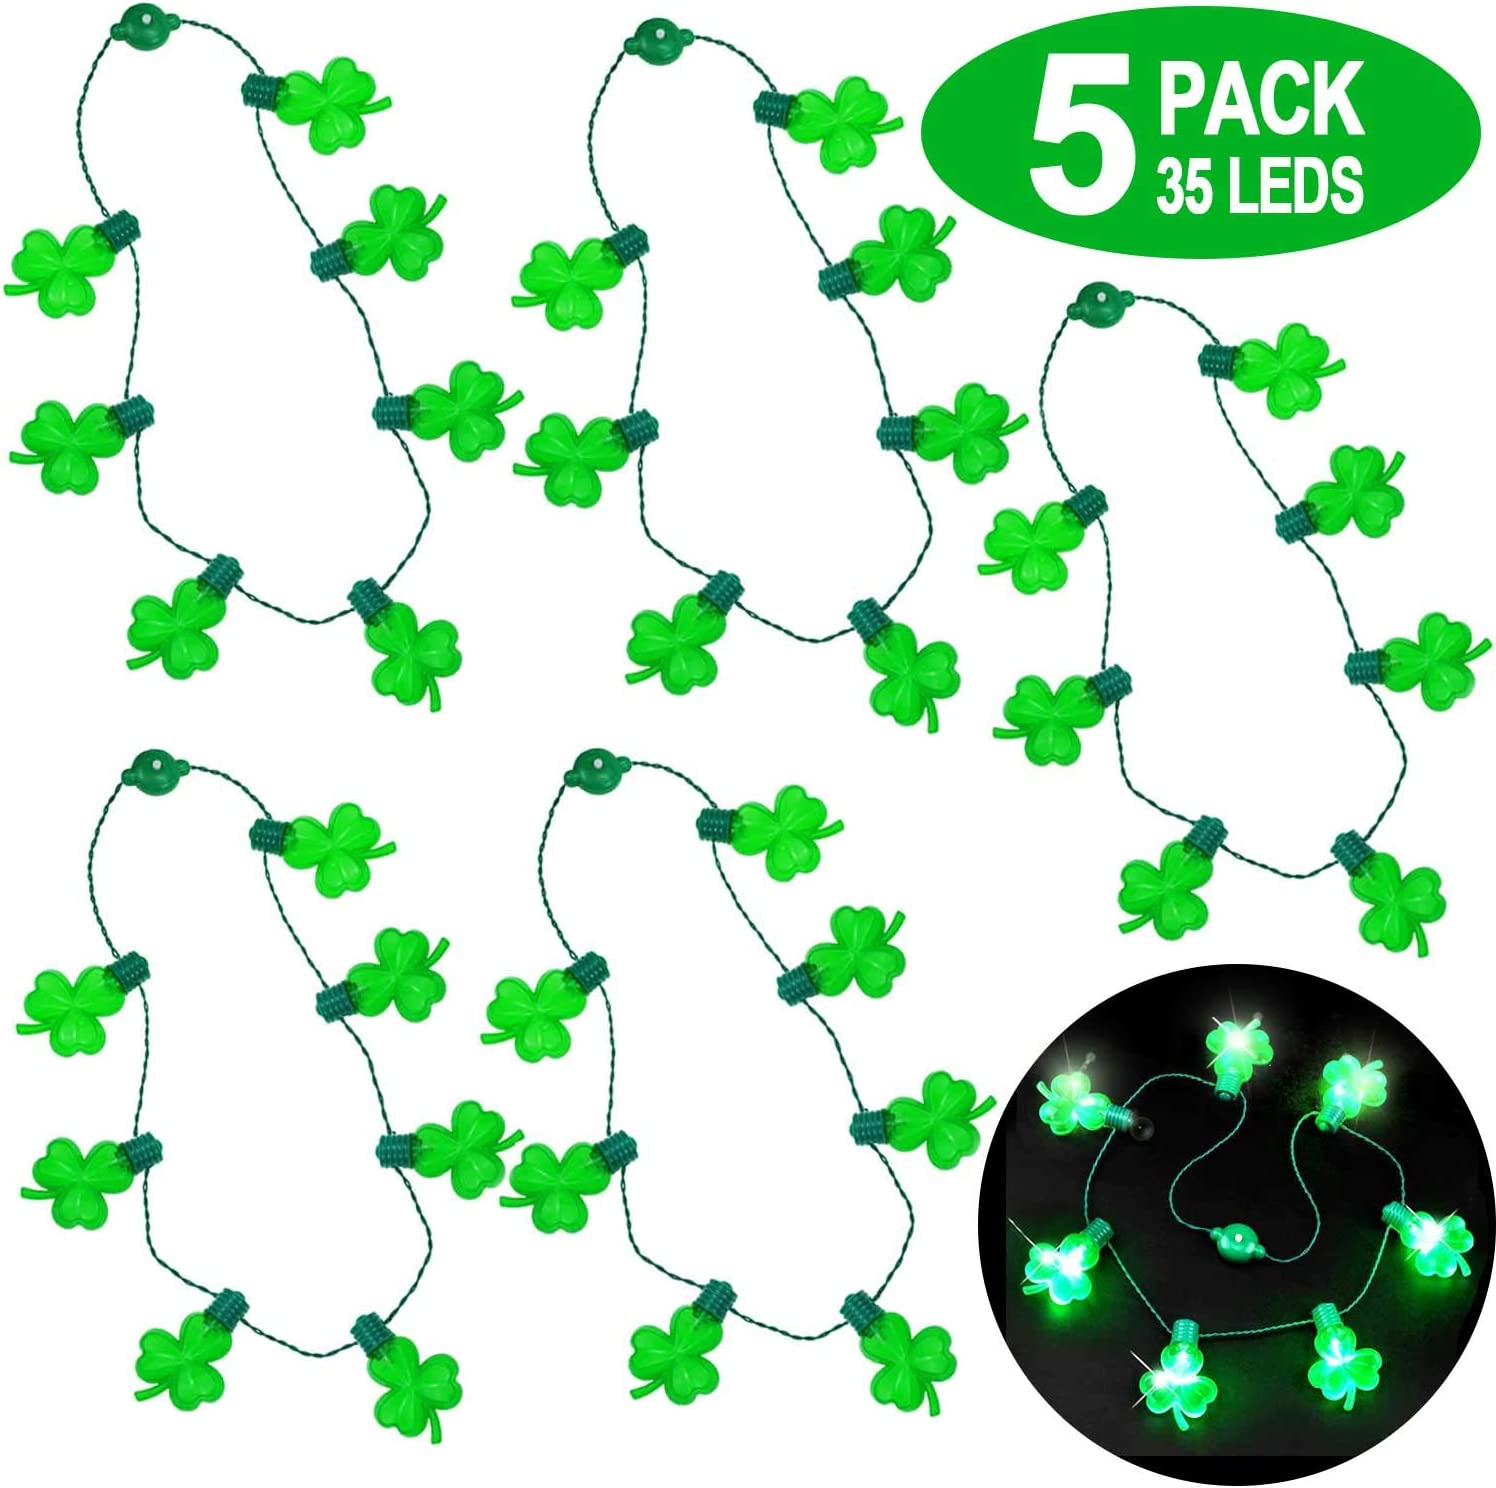 Patricks Day Accessories LED Green Shamrocks Necklaces Mardi Gras St iGeeKid 5 Pack St Patricks Day Party Favors for Men Women Kids Patricks Day Light Up Necklace St